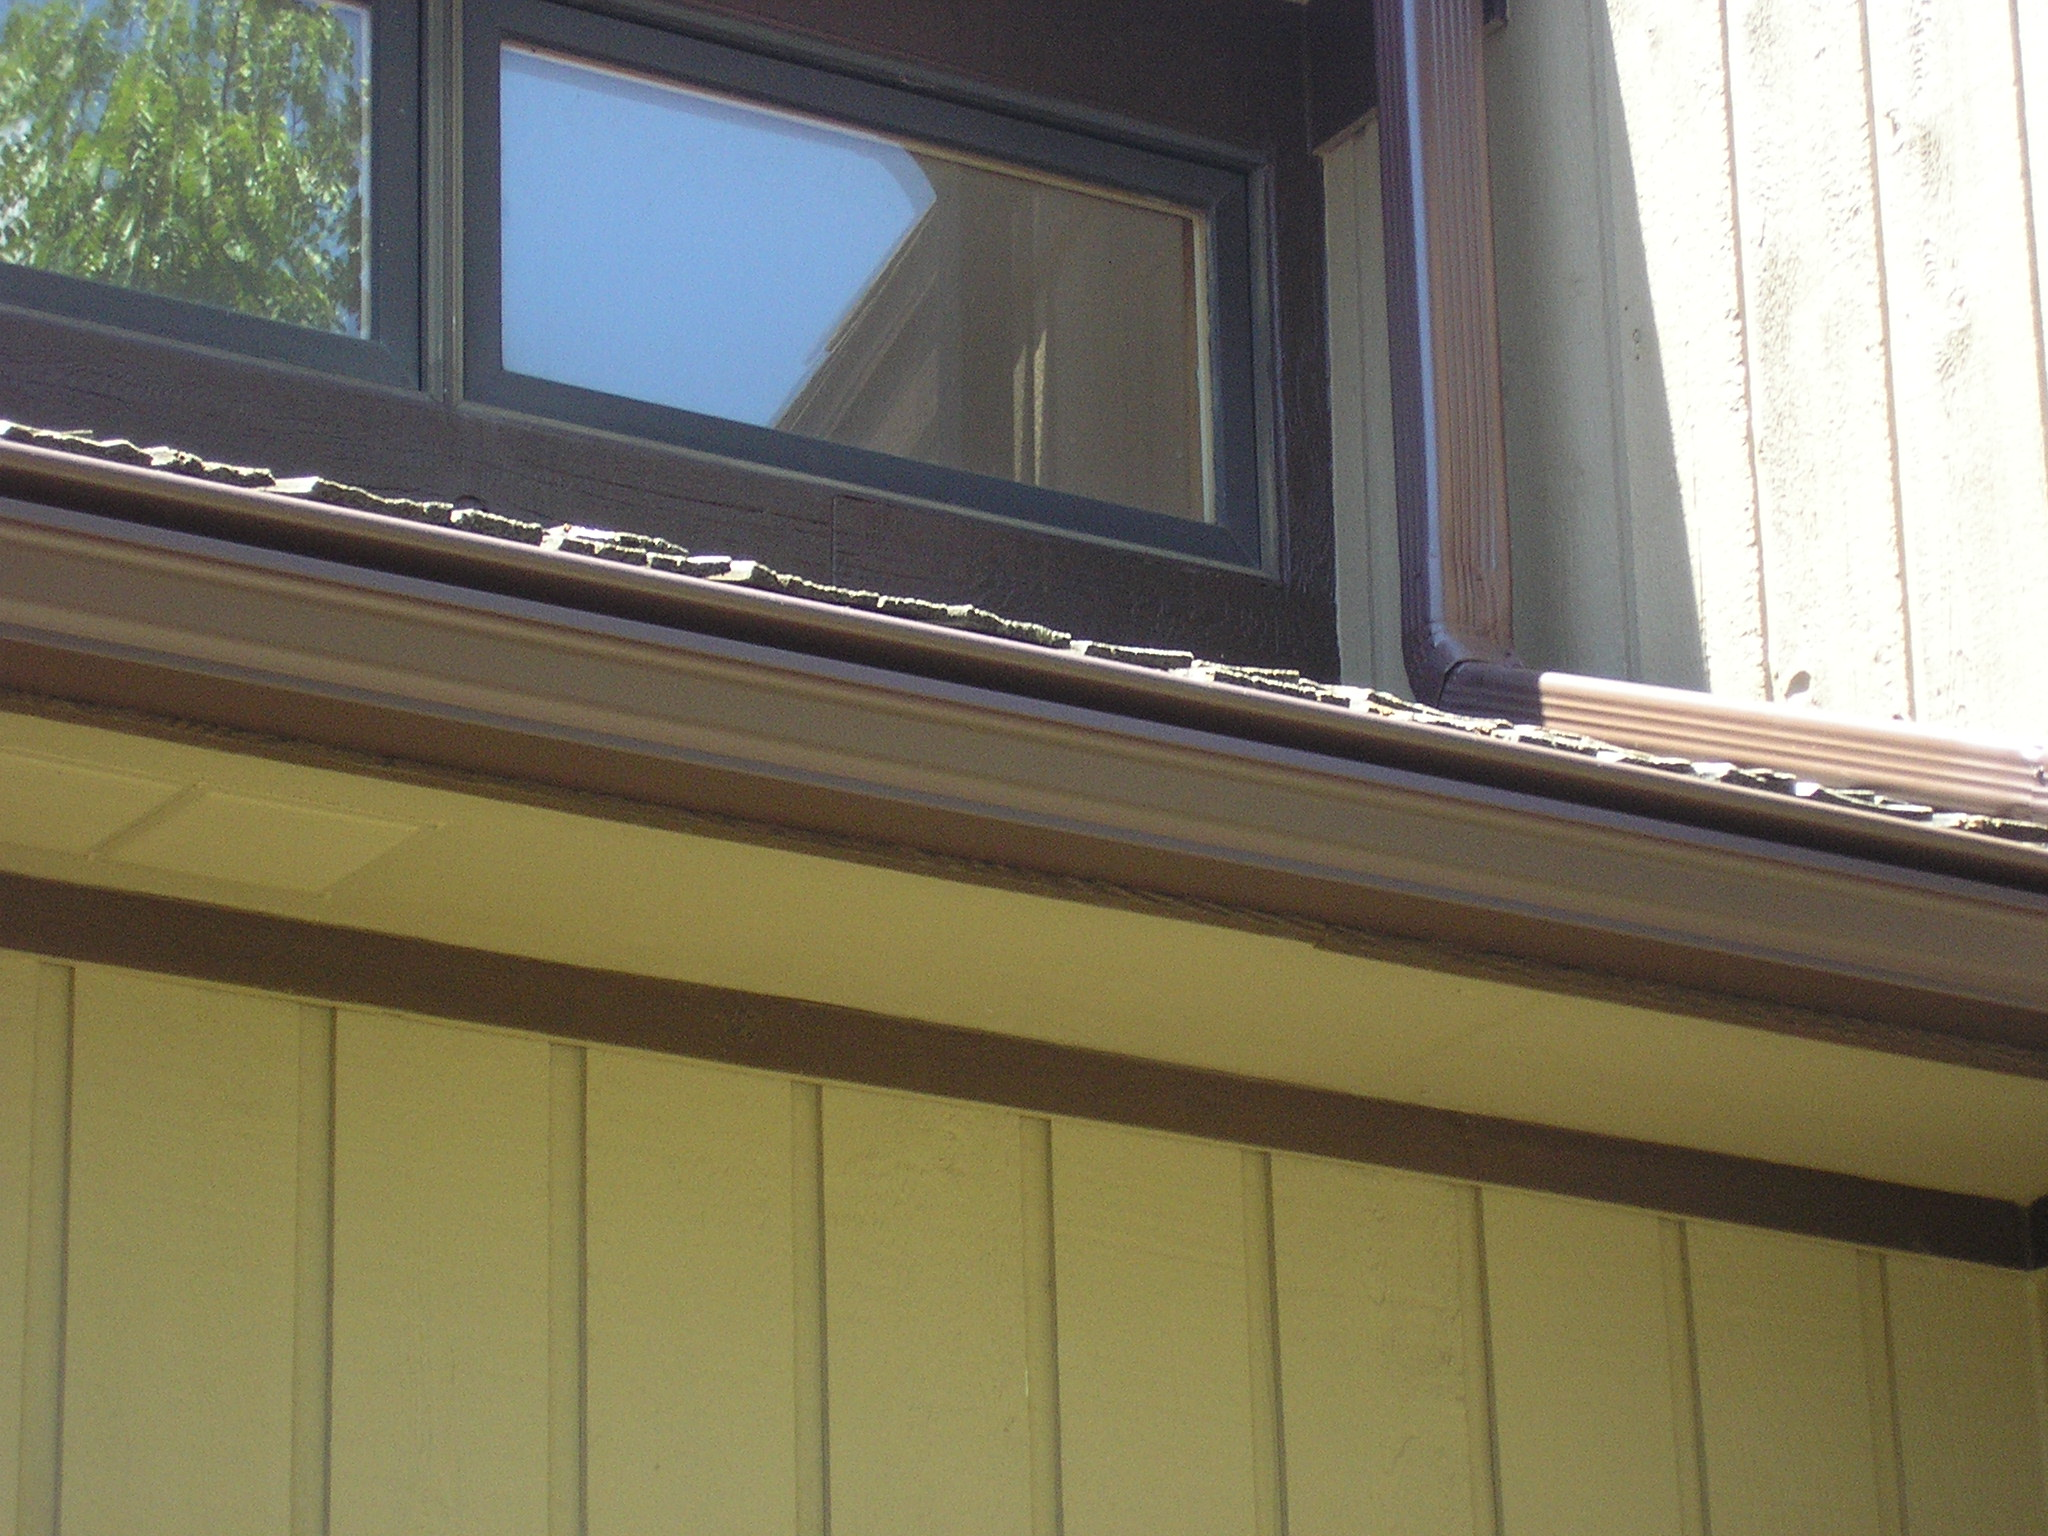 cary illinois brown gutter shutter and downspout